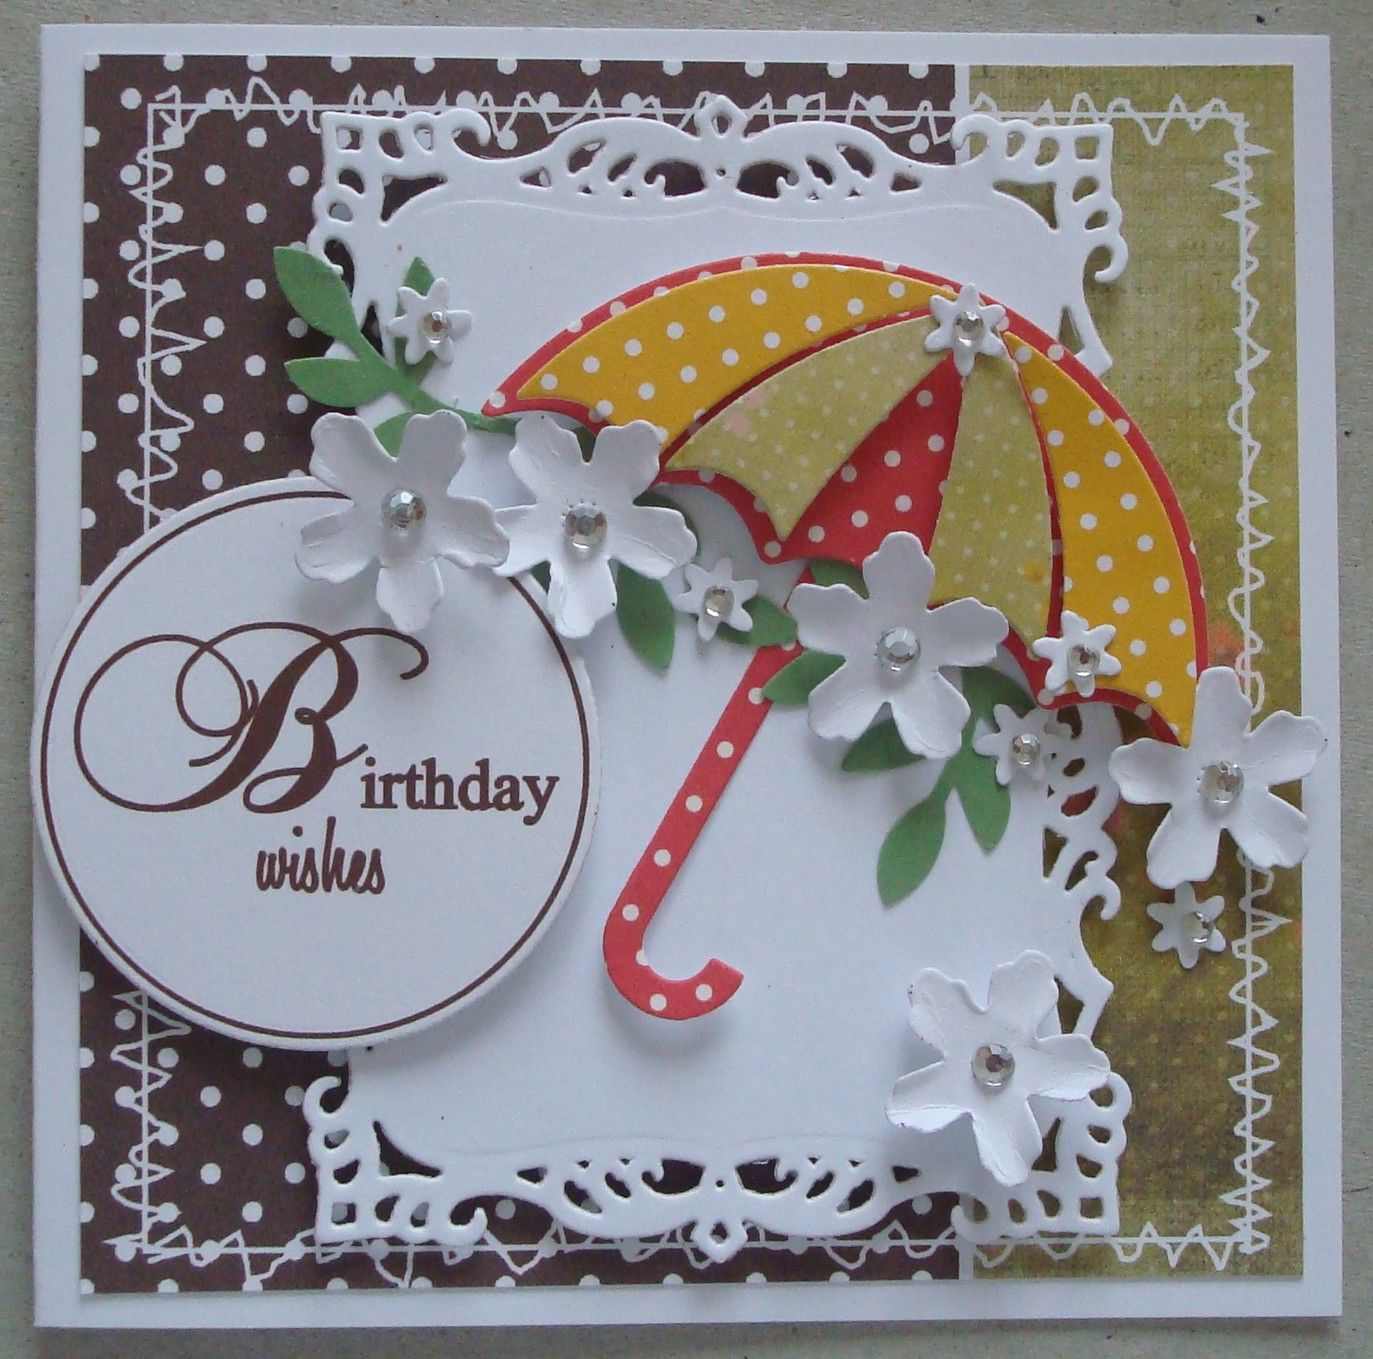 Pin on 5a. My Cards - Birthdays (Female)